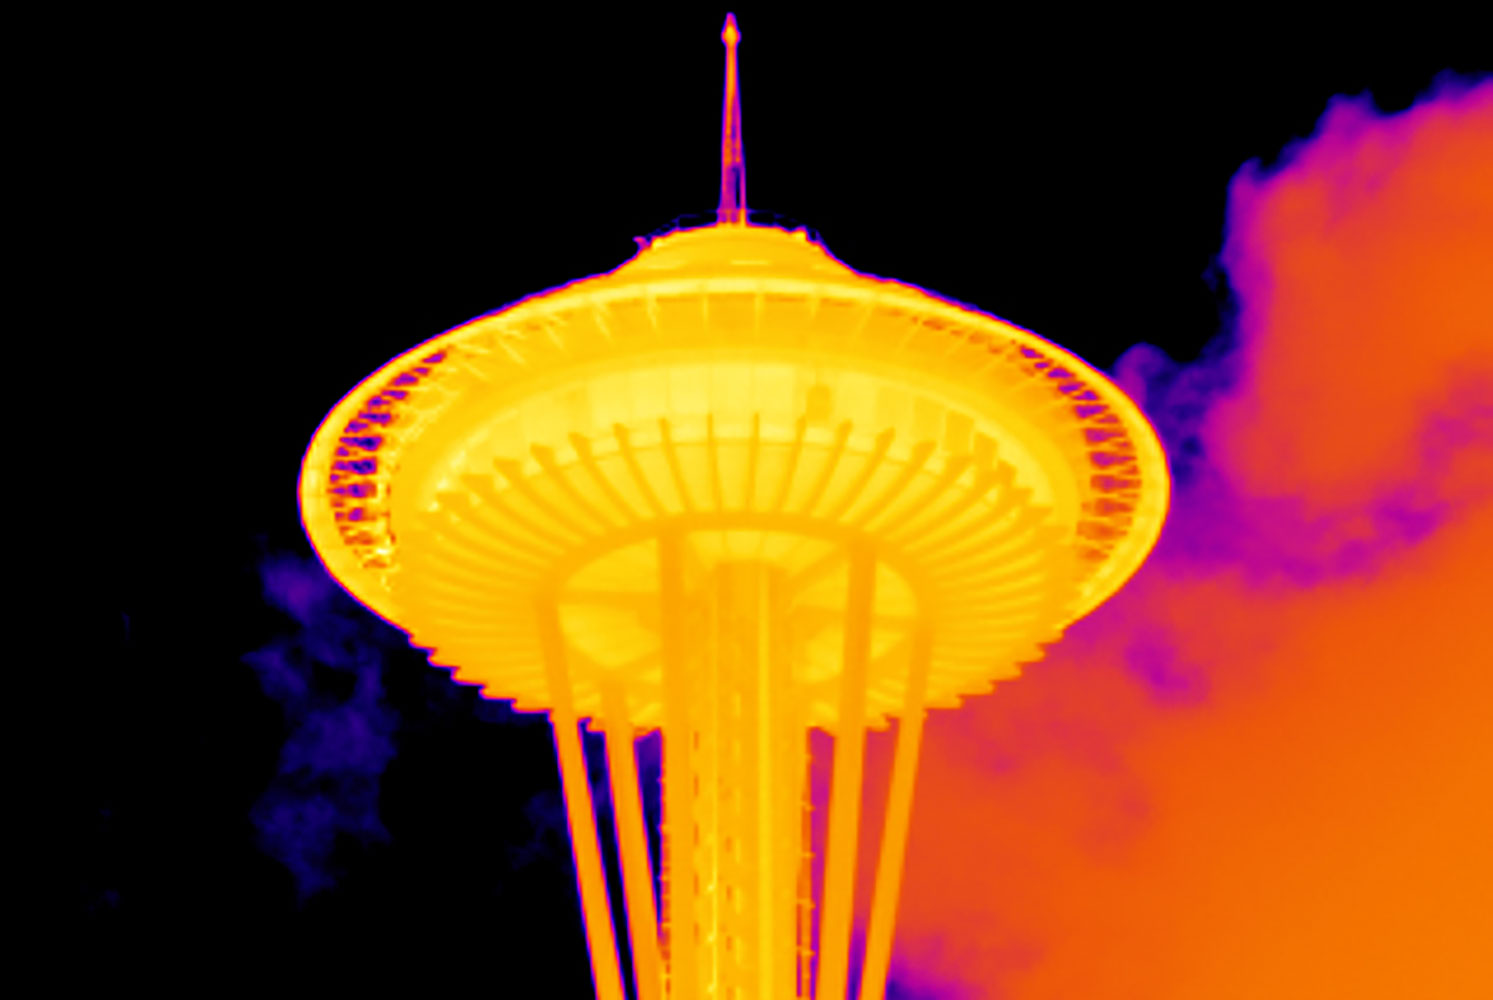 Seattle Space Needle with 2x telephoto lens on a TiX560